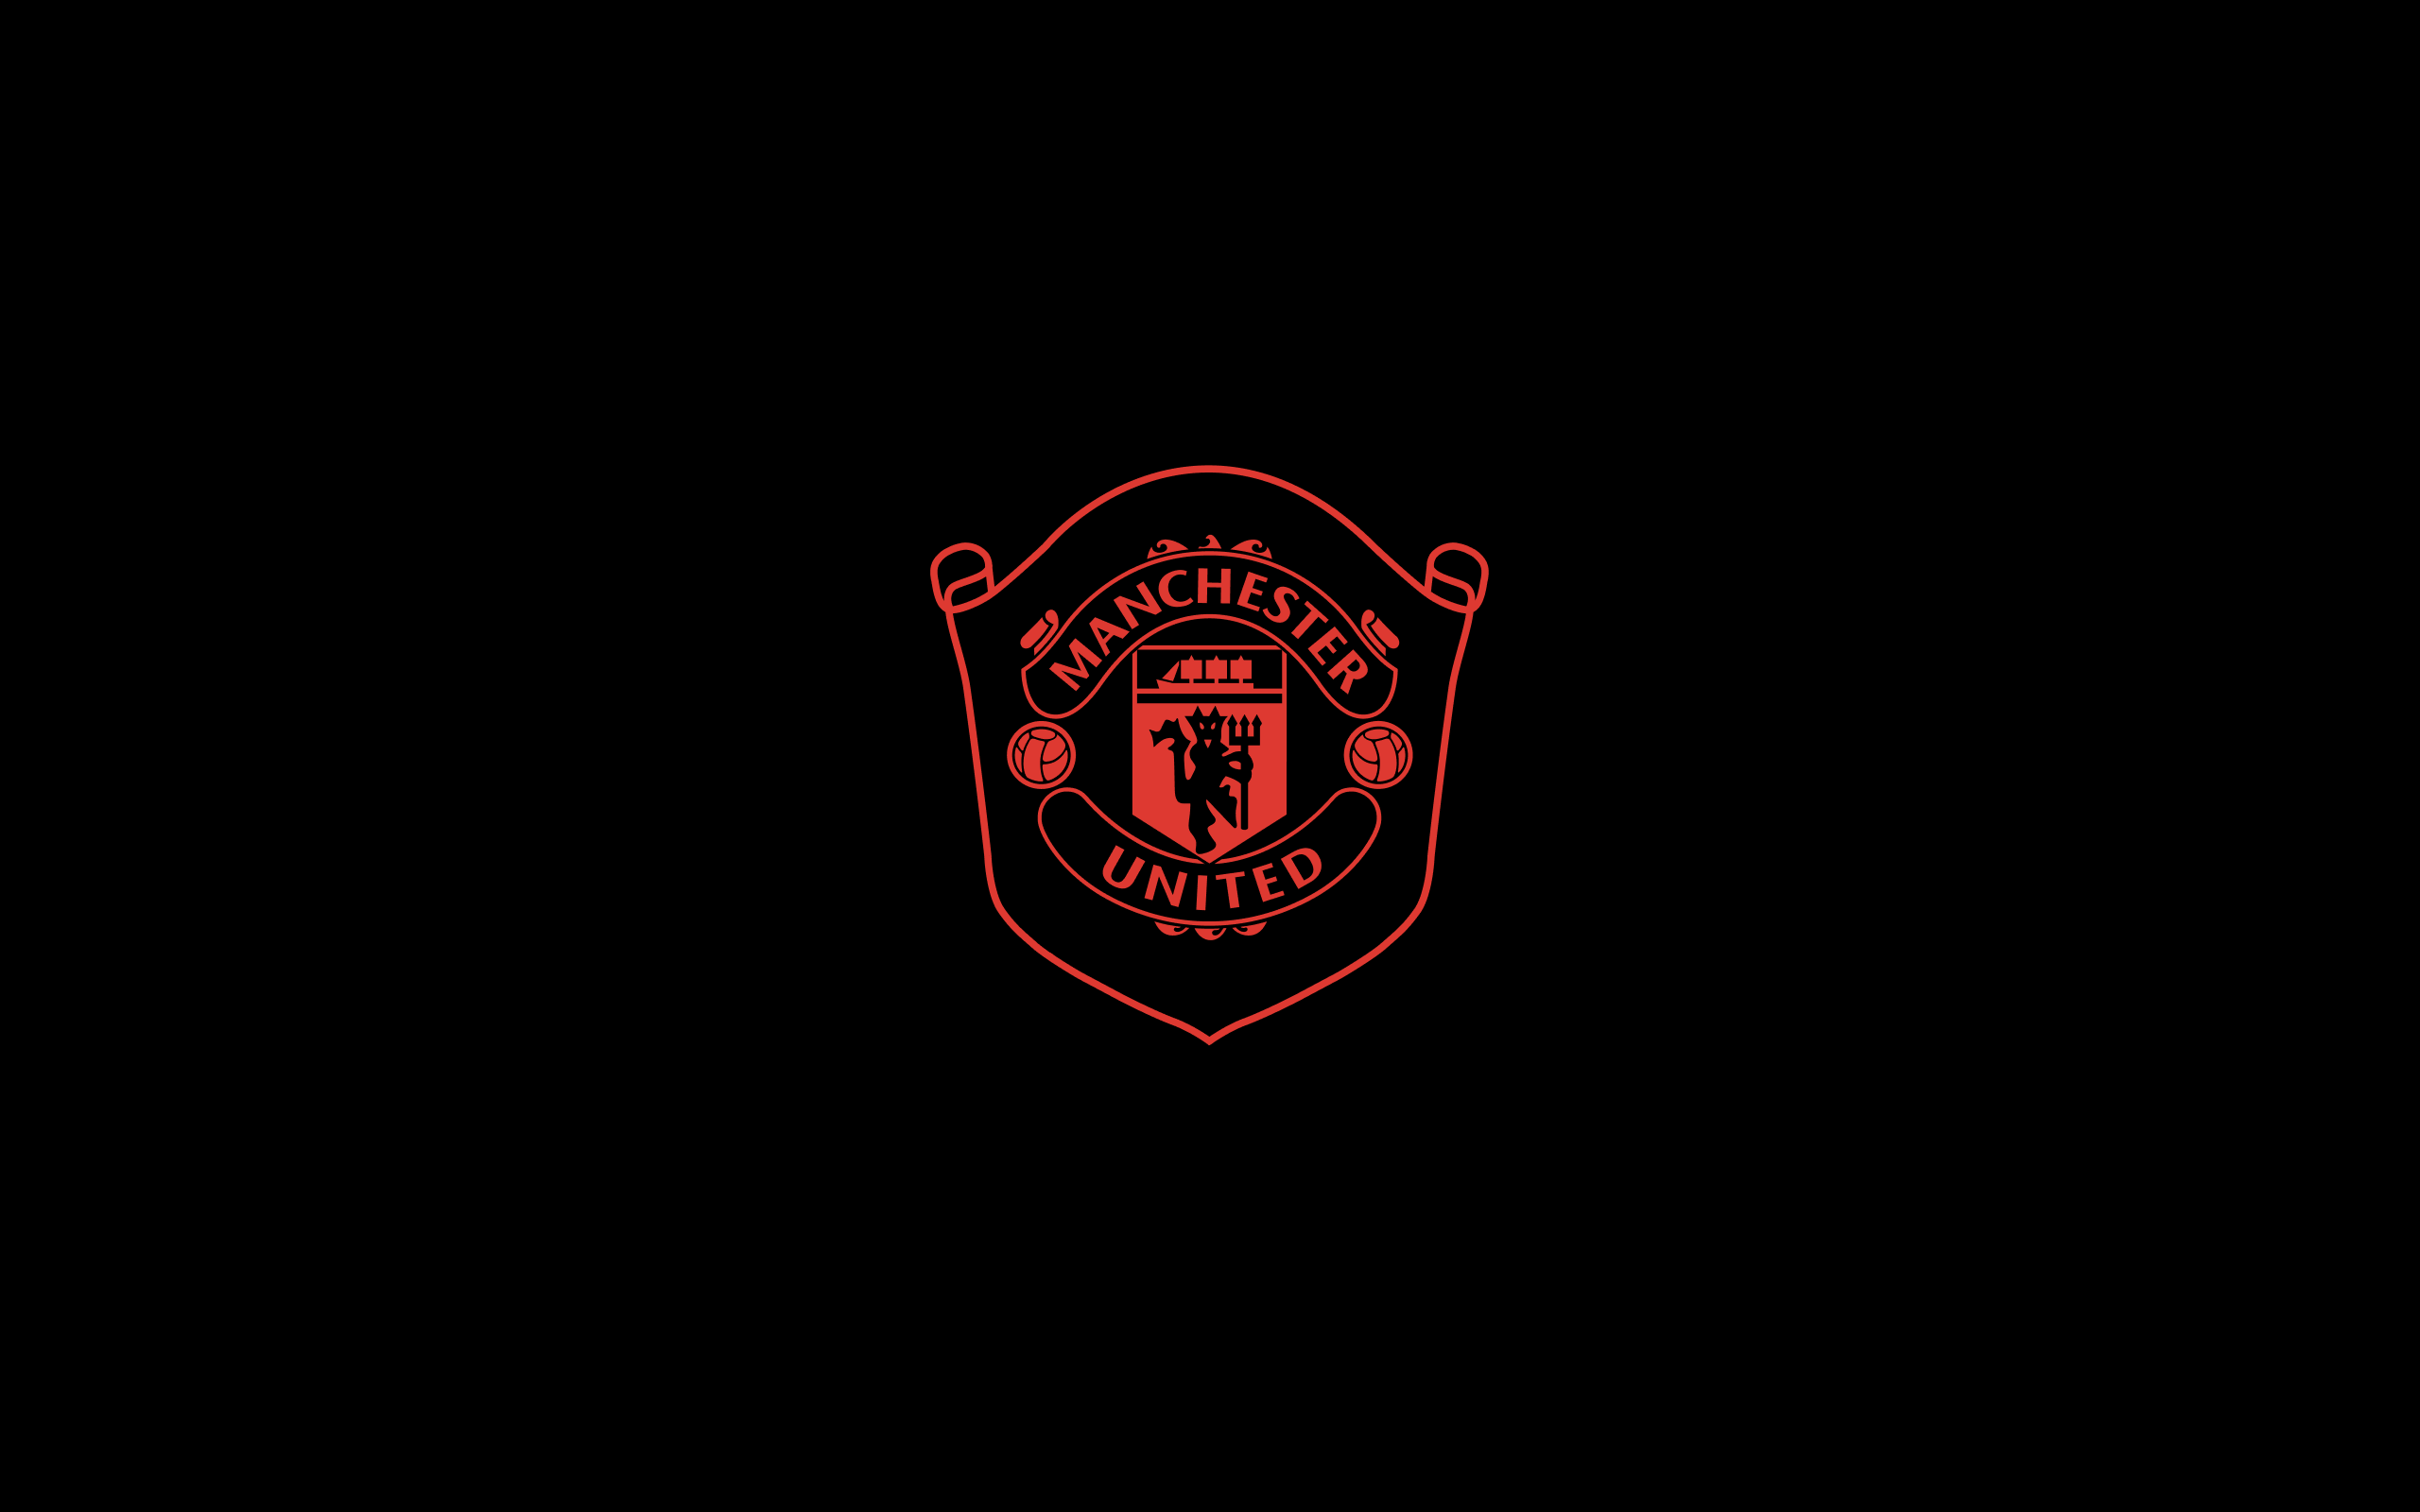 Manchester United 2020 Wallpapers Top Free Manchester United 2020 Backgrounds Wallpaperaccess